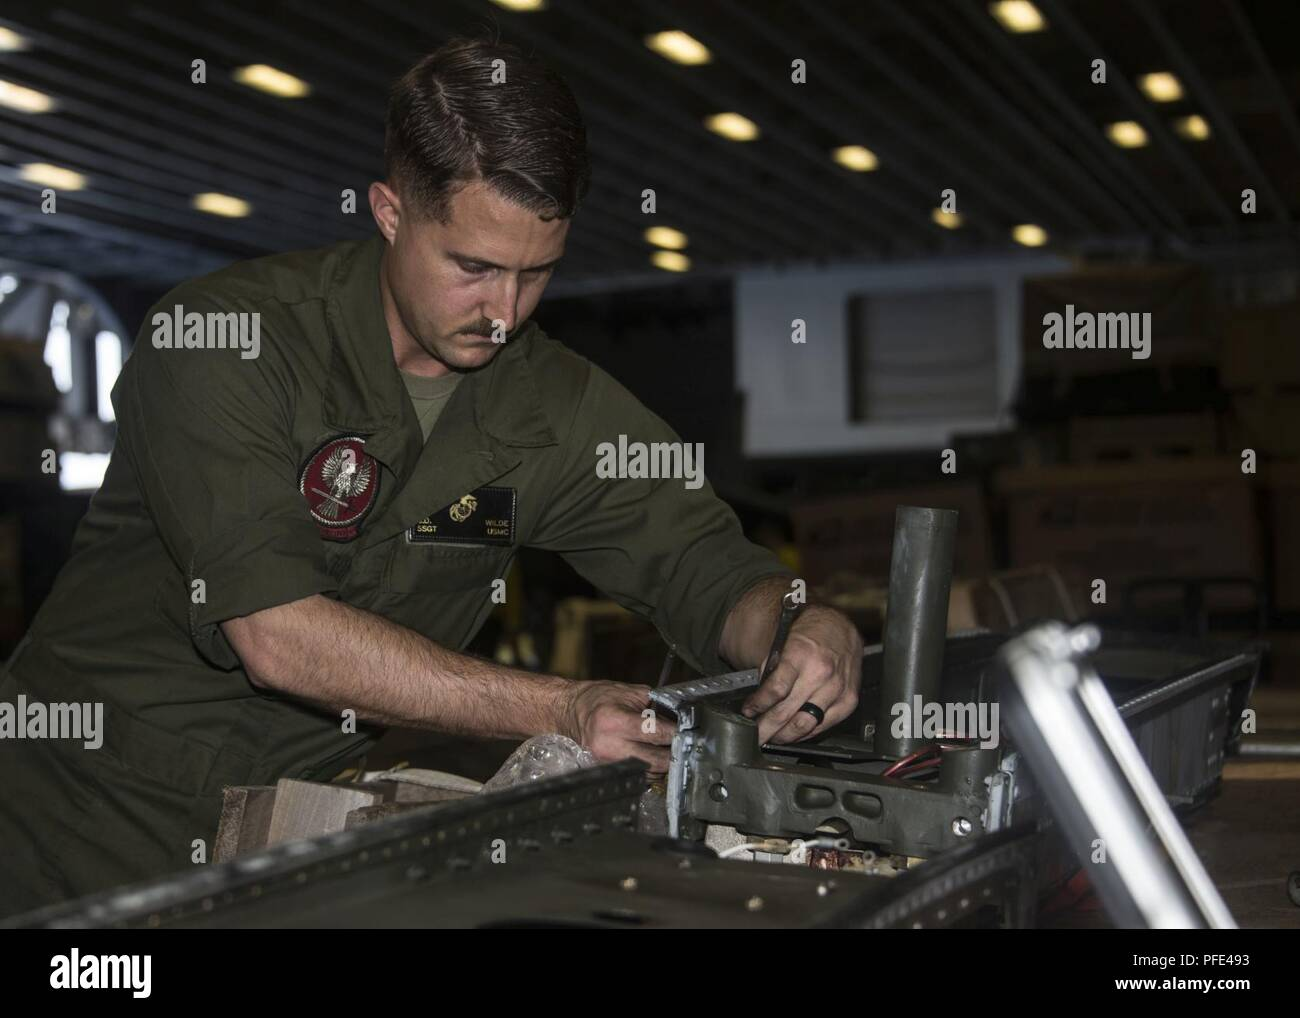 5TH FLEET AREA OF OPERATIONS (June 9, 2018) U.S. Marine Corps Staff Sgt. Steven Wilde, assigned to the 26th Marine Expeditionary Unit's Aviation Combat Element, performs maintenance on a fuel sponson in the hangar bay aboard the Wasp-class amphibious assault ship USS Iwo Jima (LHD 7), June 9, 2018. Iwo Jima, homeported in Mayport, Fla., is on deployment to the U.S. 5th Fleet area of operations in support of maritime security operations to reassure allies and partners, and preserve the freedom of navigation and the free flow of commerce in the region. Stock Photo